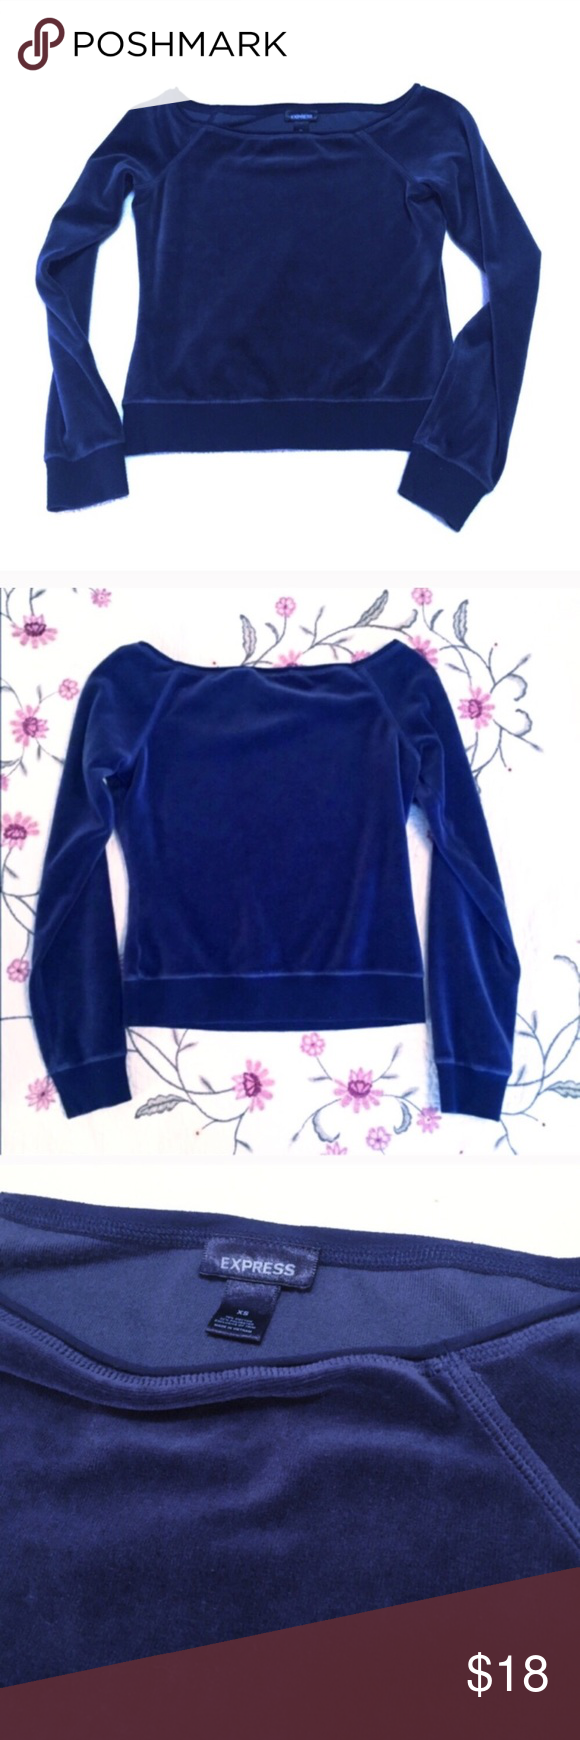 """🆕Express navy velour cropped long sleeve top Measures approx 19"""" long, 21"""" arm length, & 16"""" across chest. Size XS. Cotton/poly blend. NWOT. Flawless! Washed once but never worn. ✖️I do NOT MODEL✖️ 🔴Bundle to save! 🔴NO TRADES. 🔴REASONABLE offers welcome via offer button. Express Tops"""